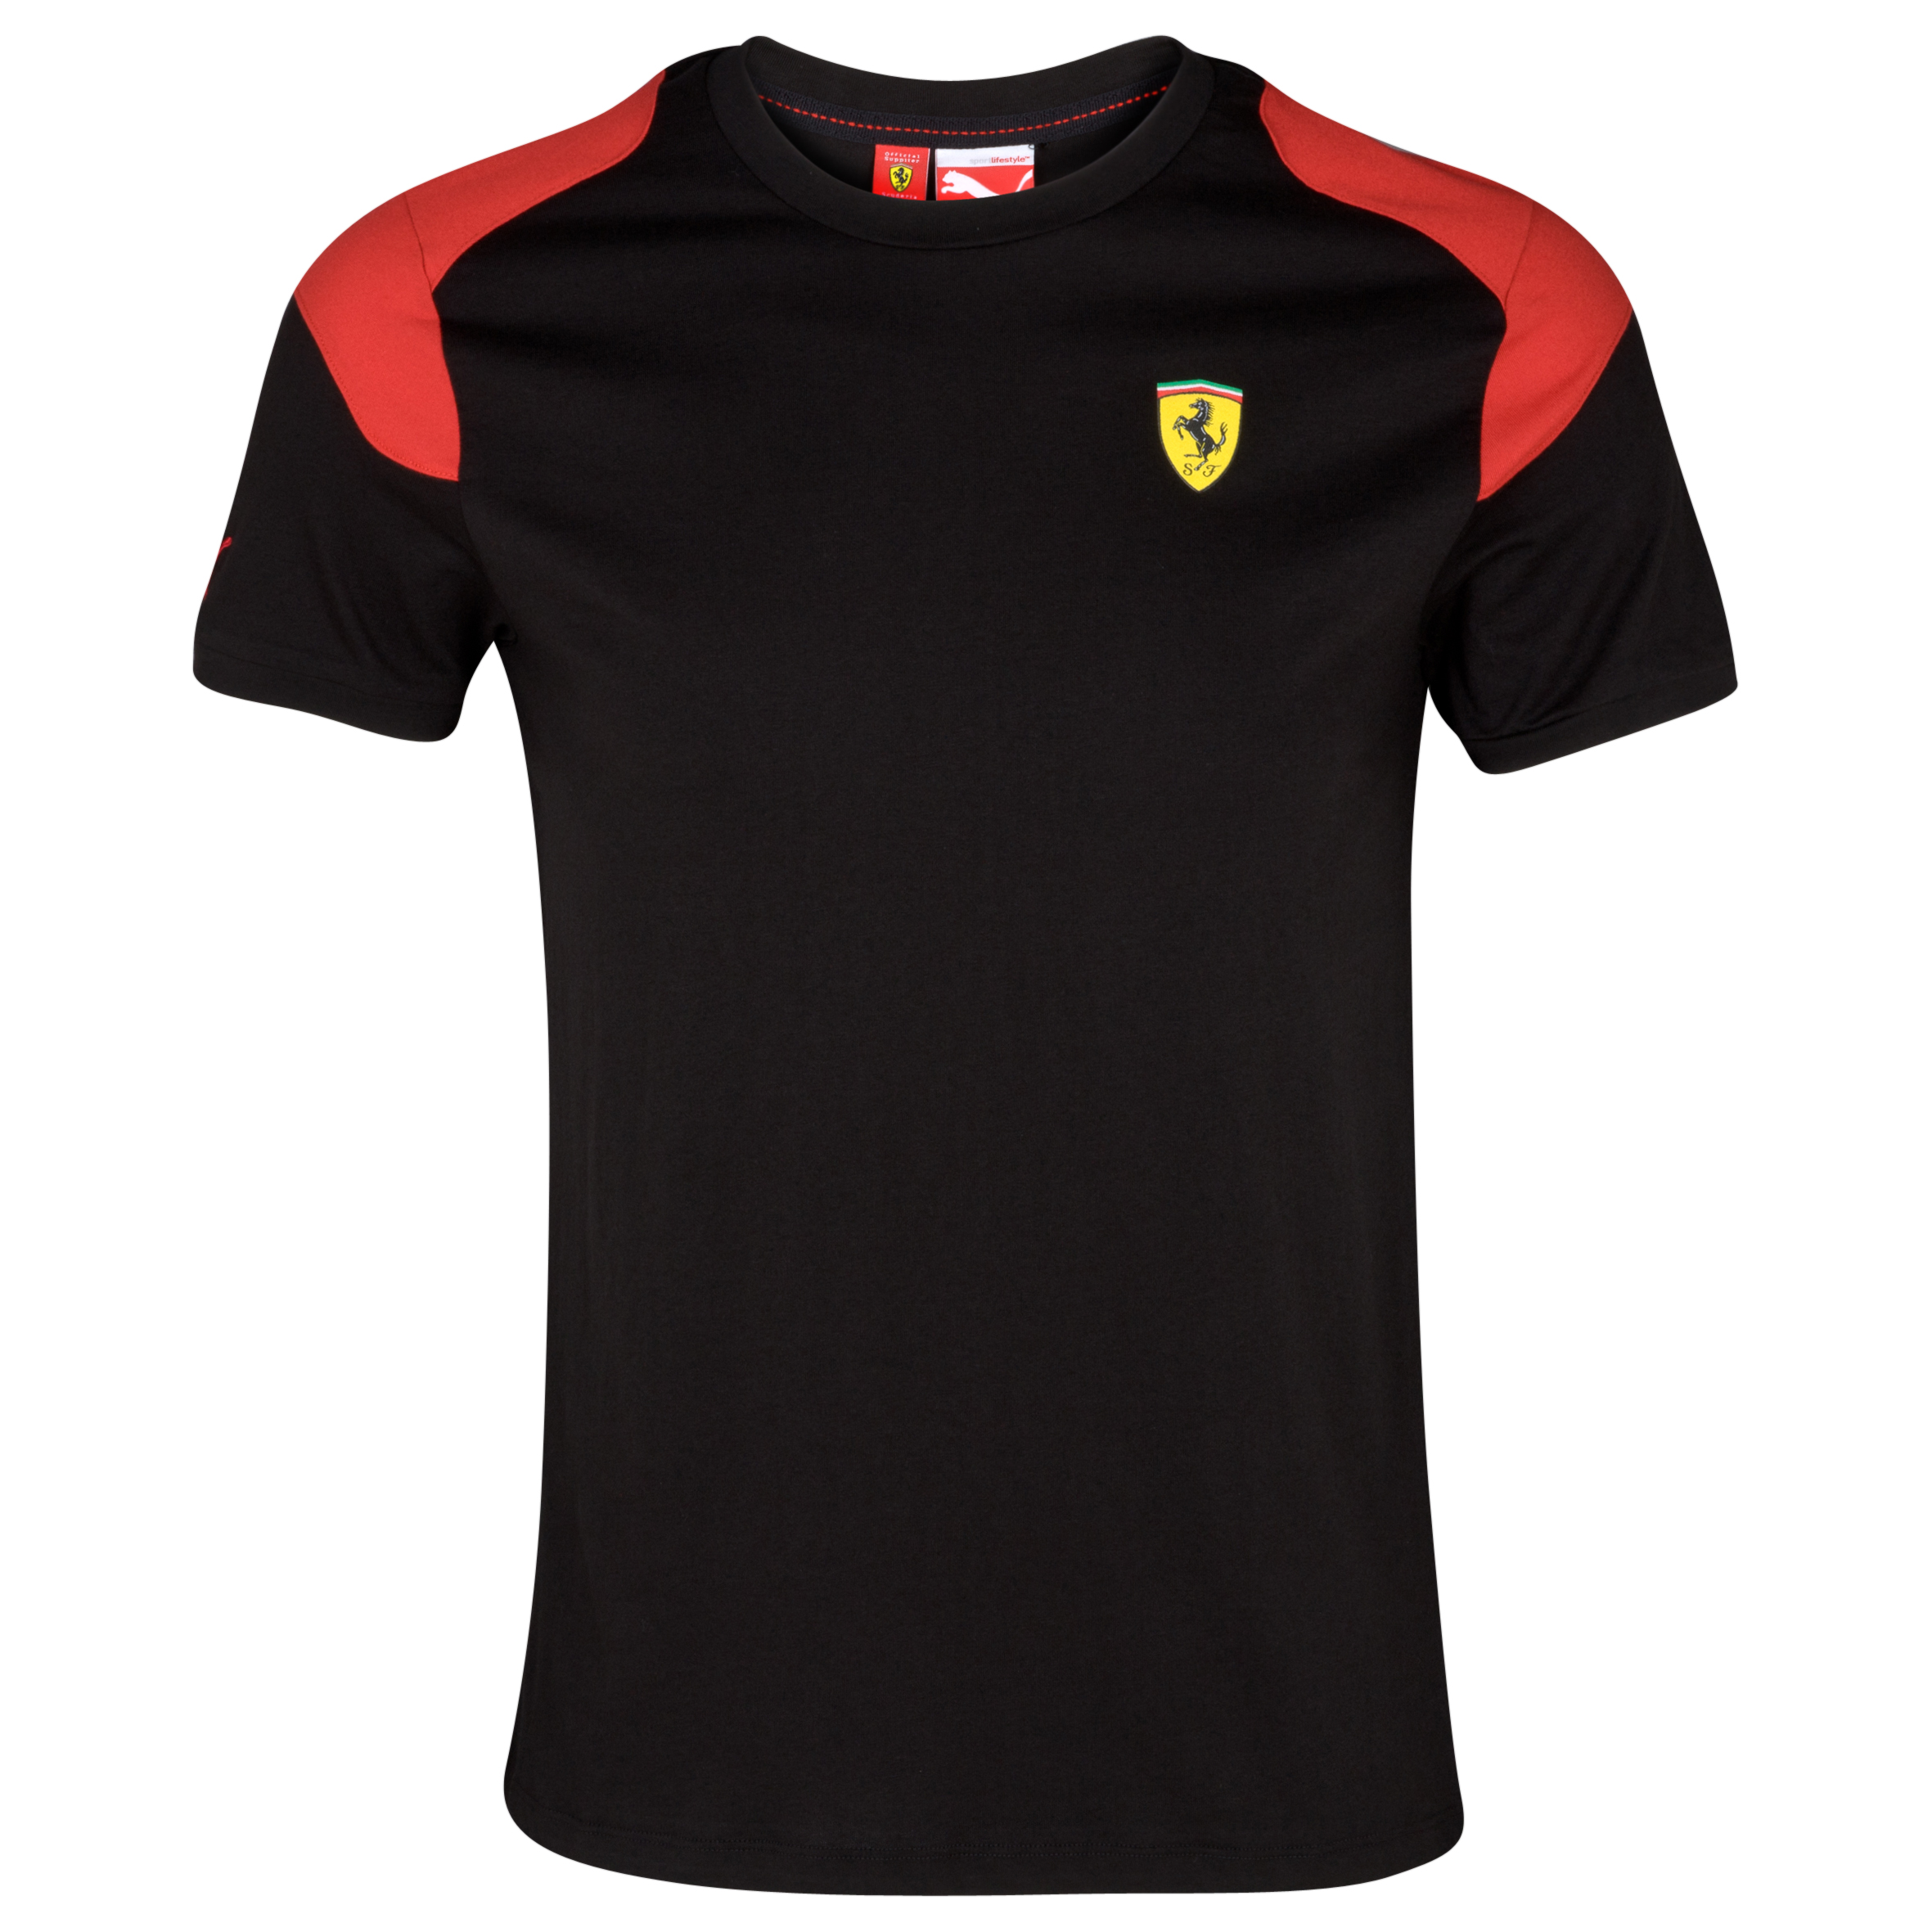 Scuderia Ferrari 2012 T-Shirt - Black